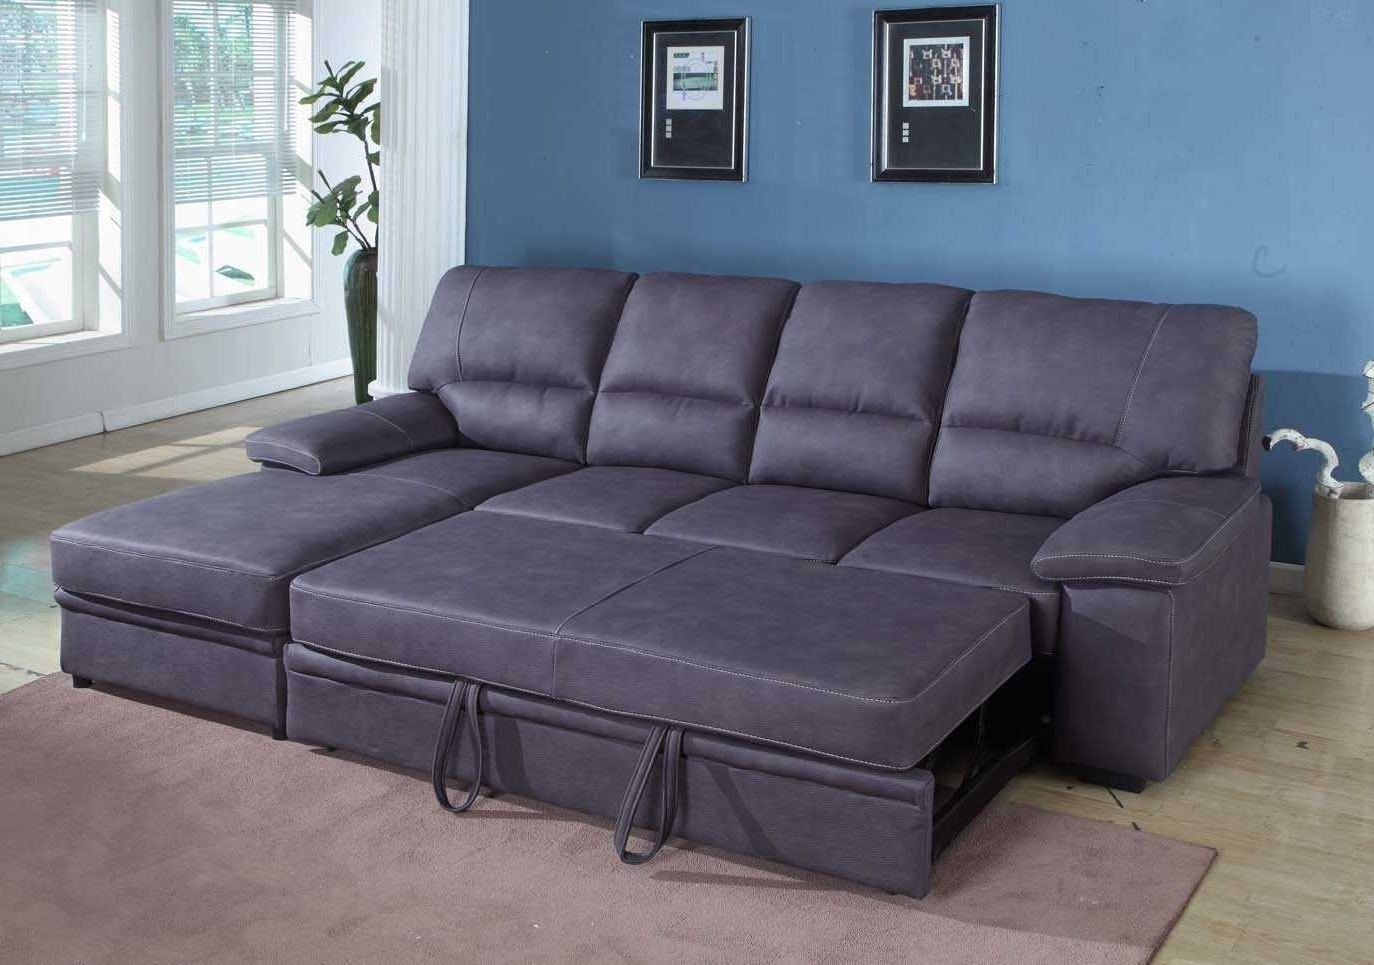 Gray Sectional Sofa With Chaise ~ Americanfurnituremanufacturer Inside Well Known Grey Sectional Sofas With Chaise (View 3 of 15)